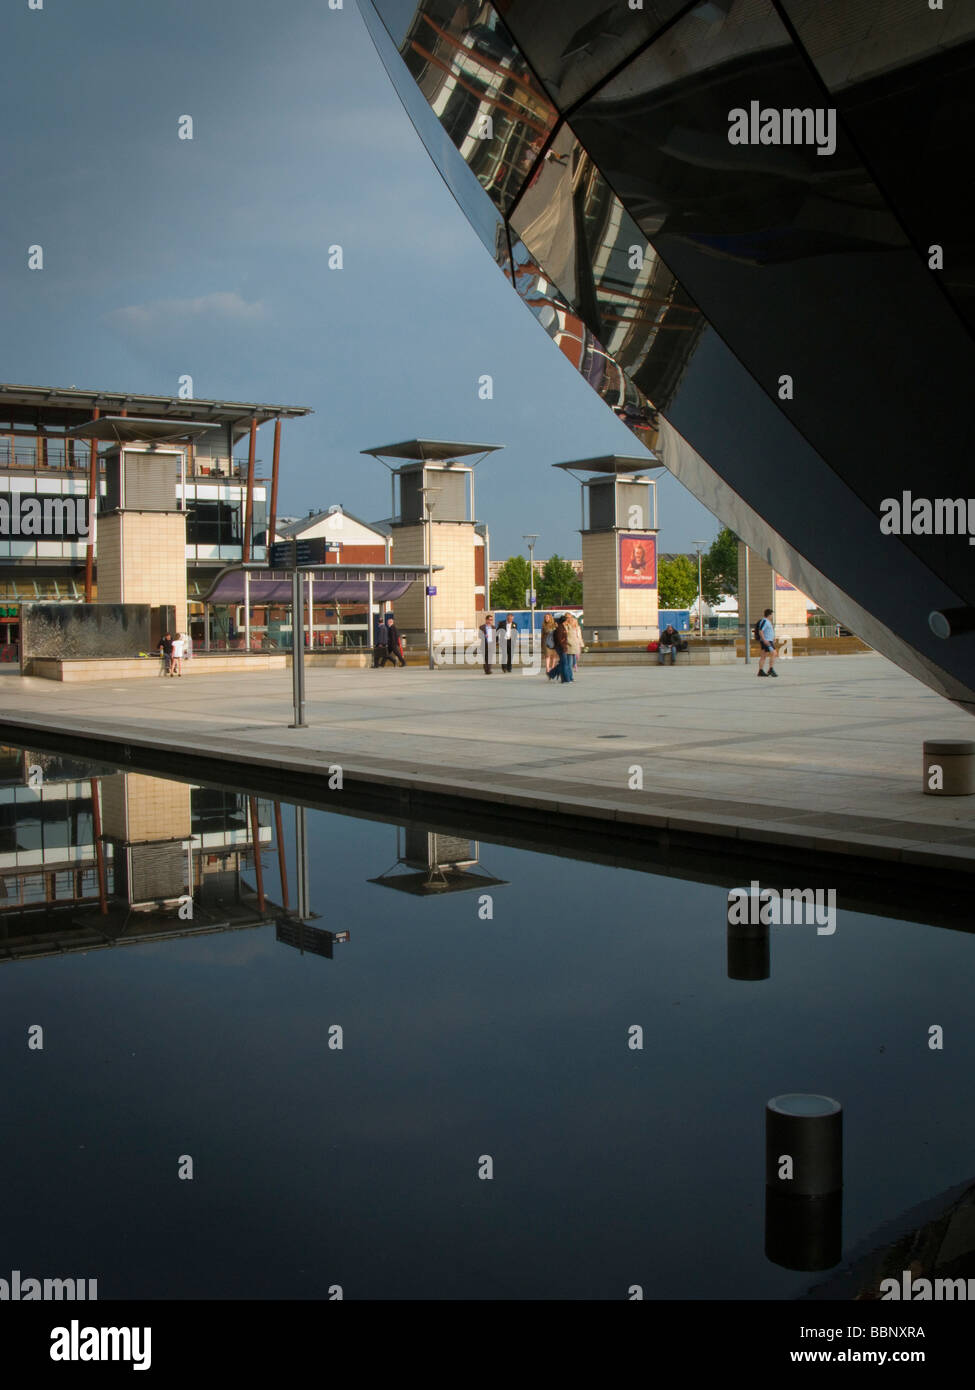 At Bristol on the harbourside William Pye water sculptures - Stock Image